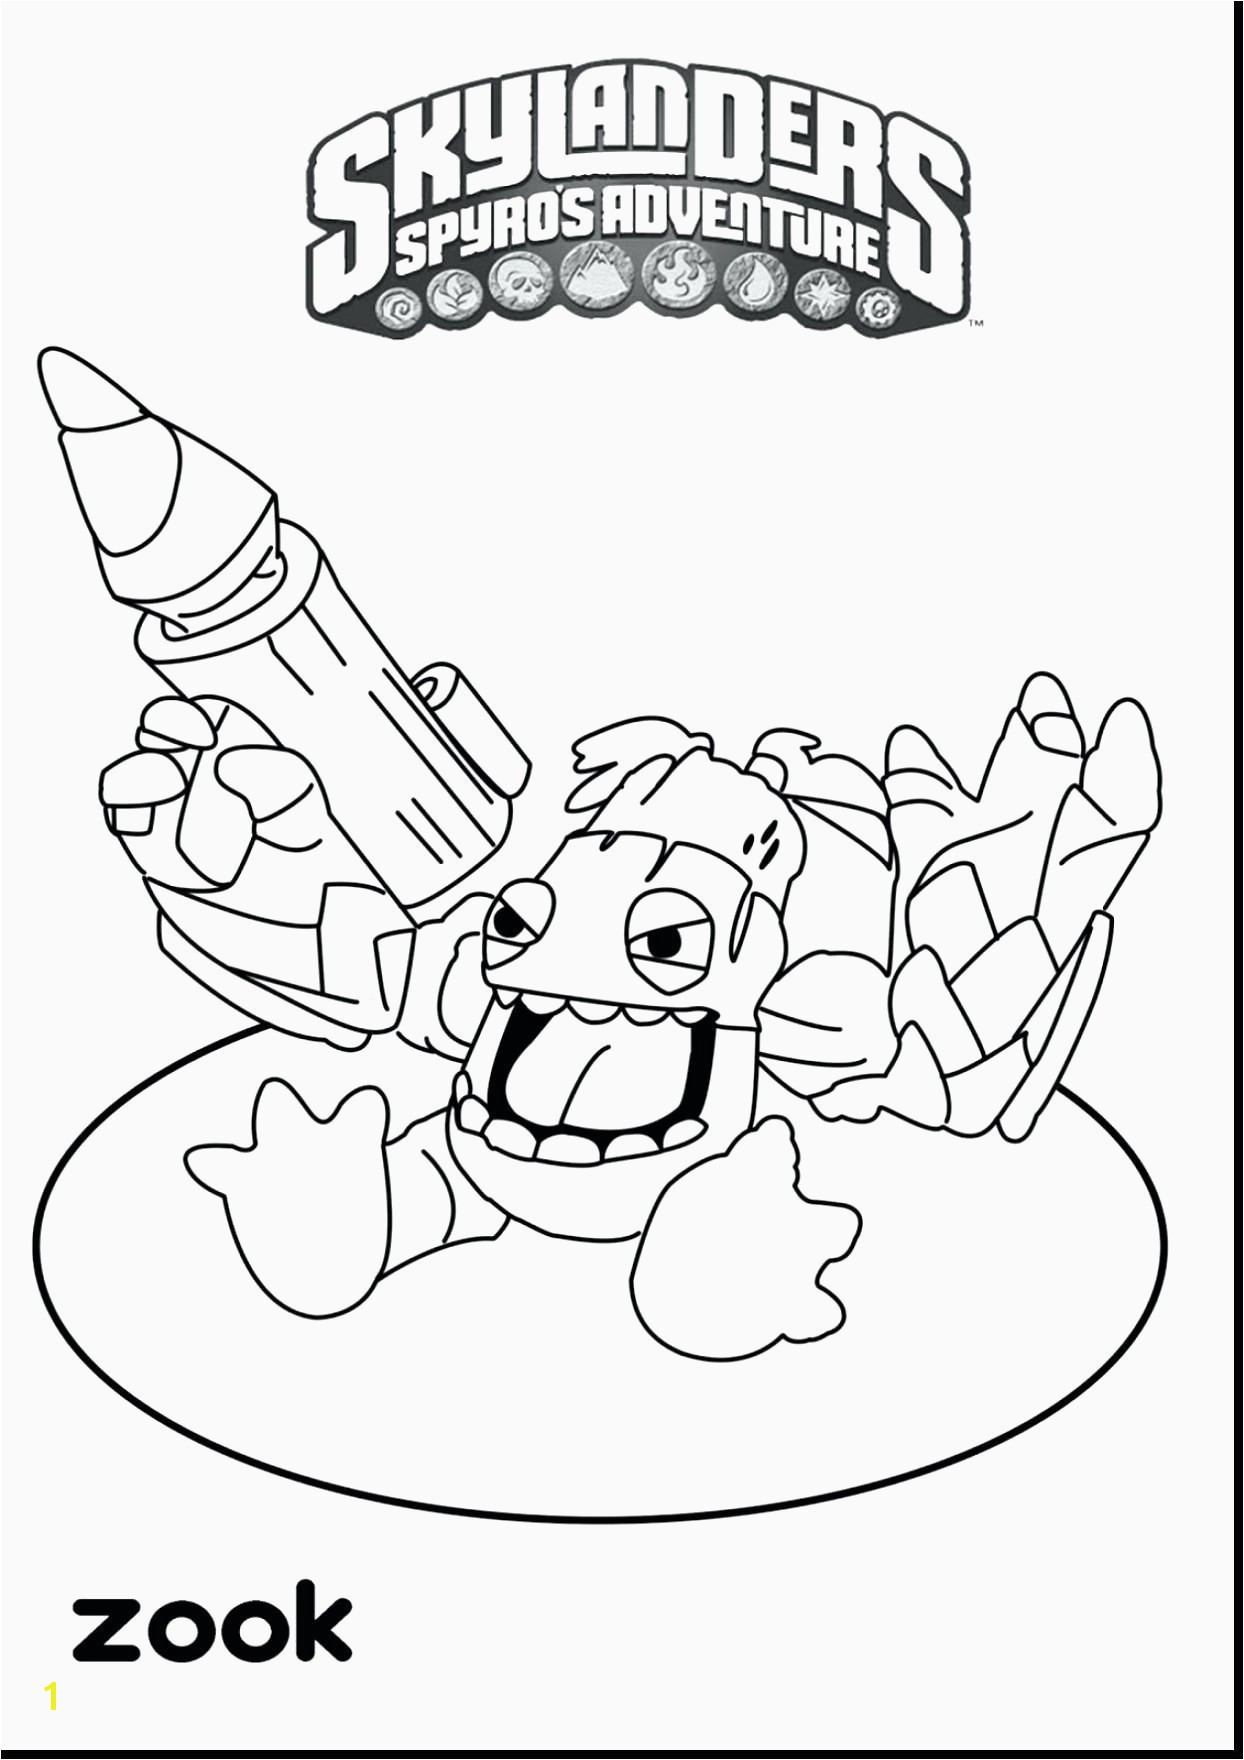 Jesus Loves Me Coloring Page Jesus With Children Coloring Page Bestjesus Loves Me Color Page